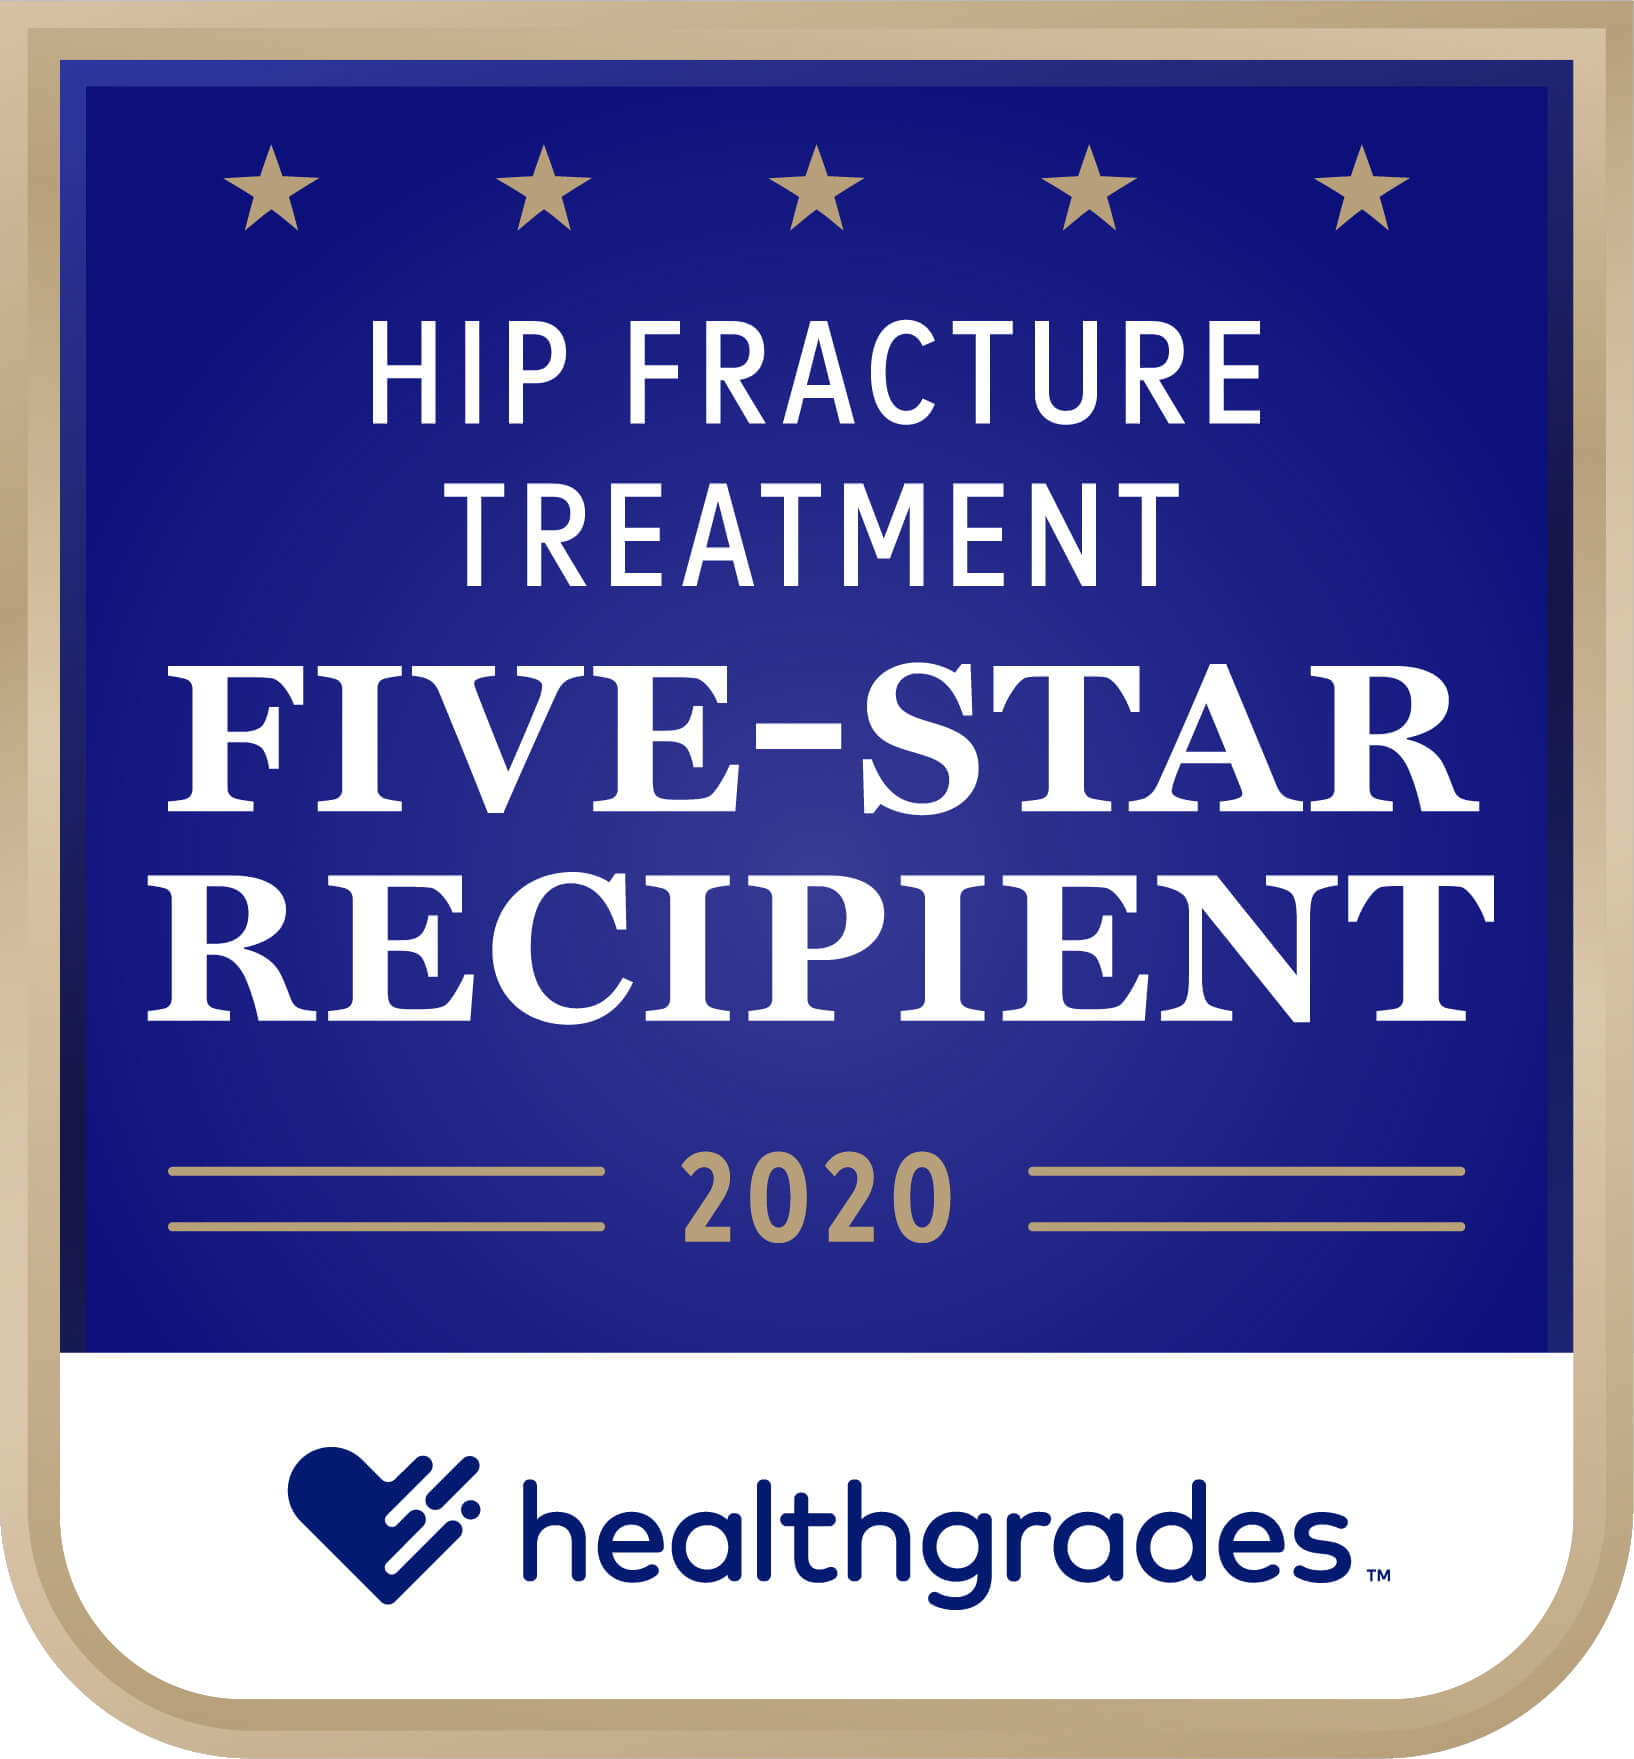 Healthgrades Five-Star Recipient for Hip Fracture Treatment Award 2020